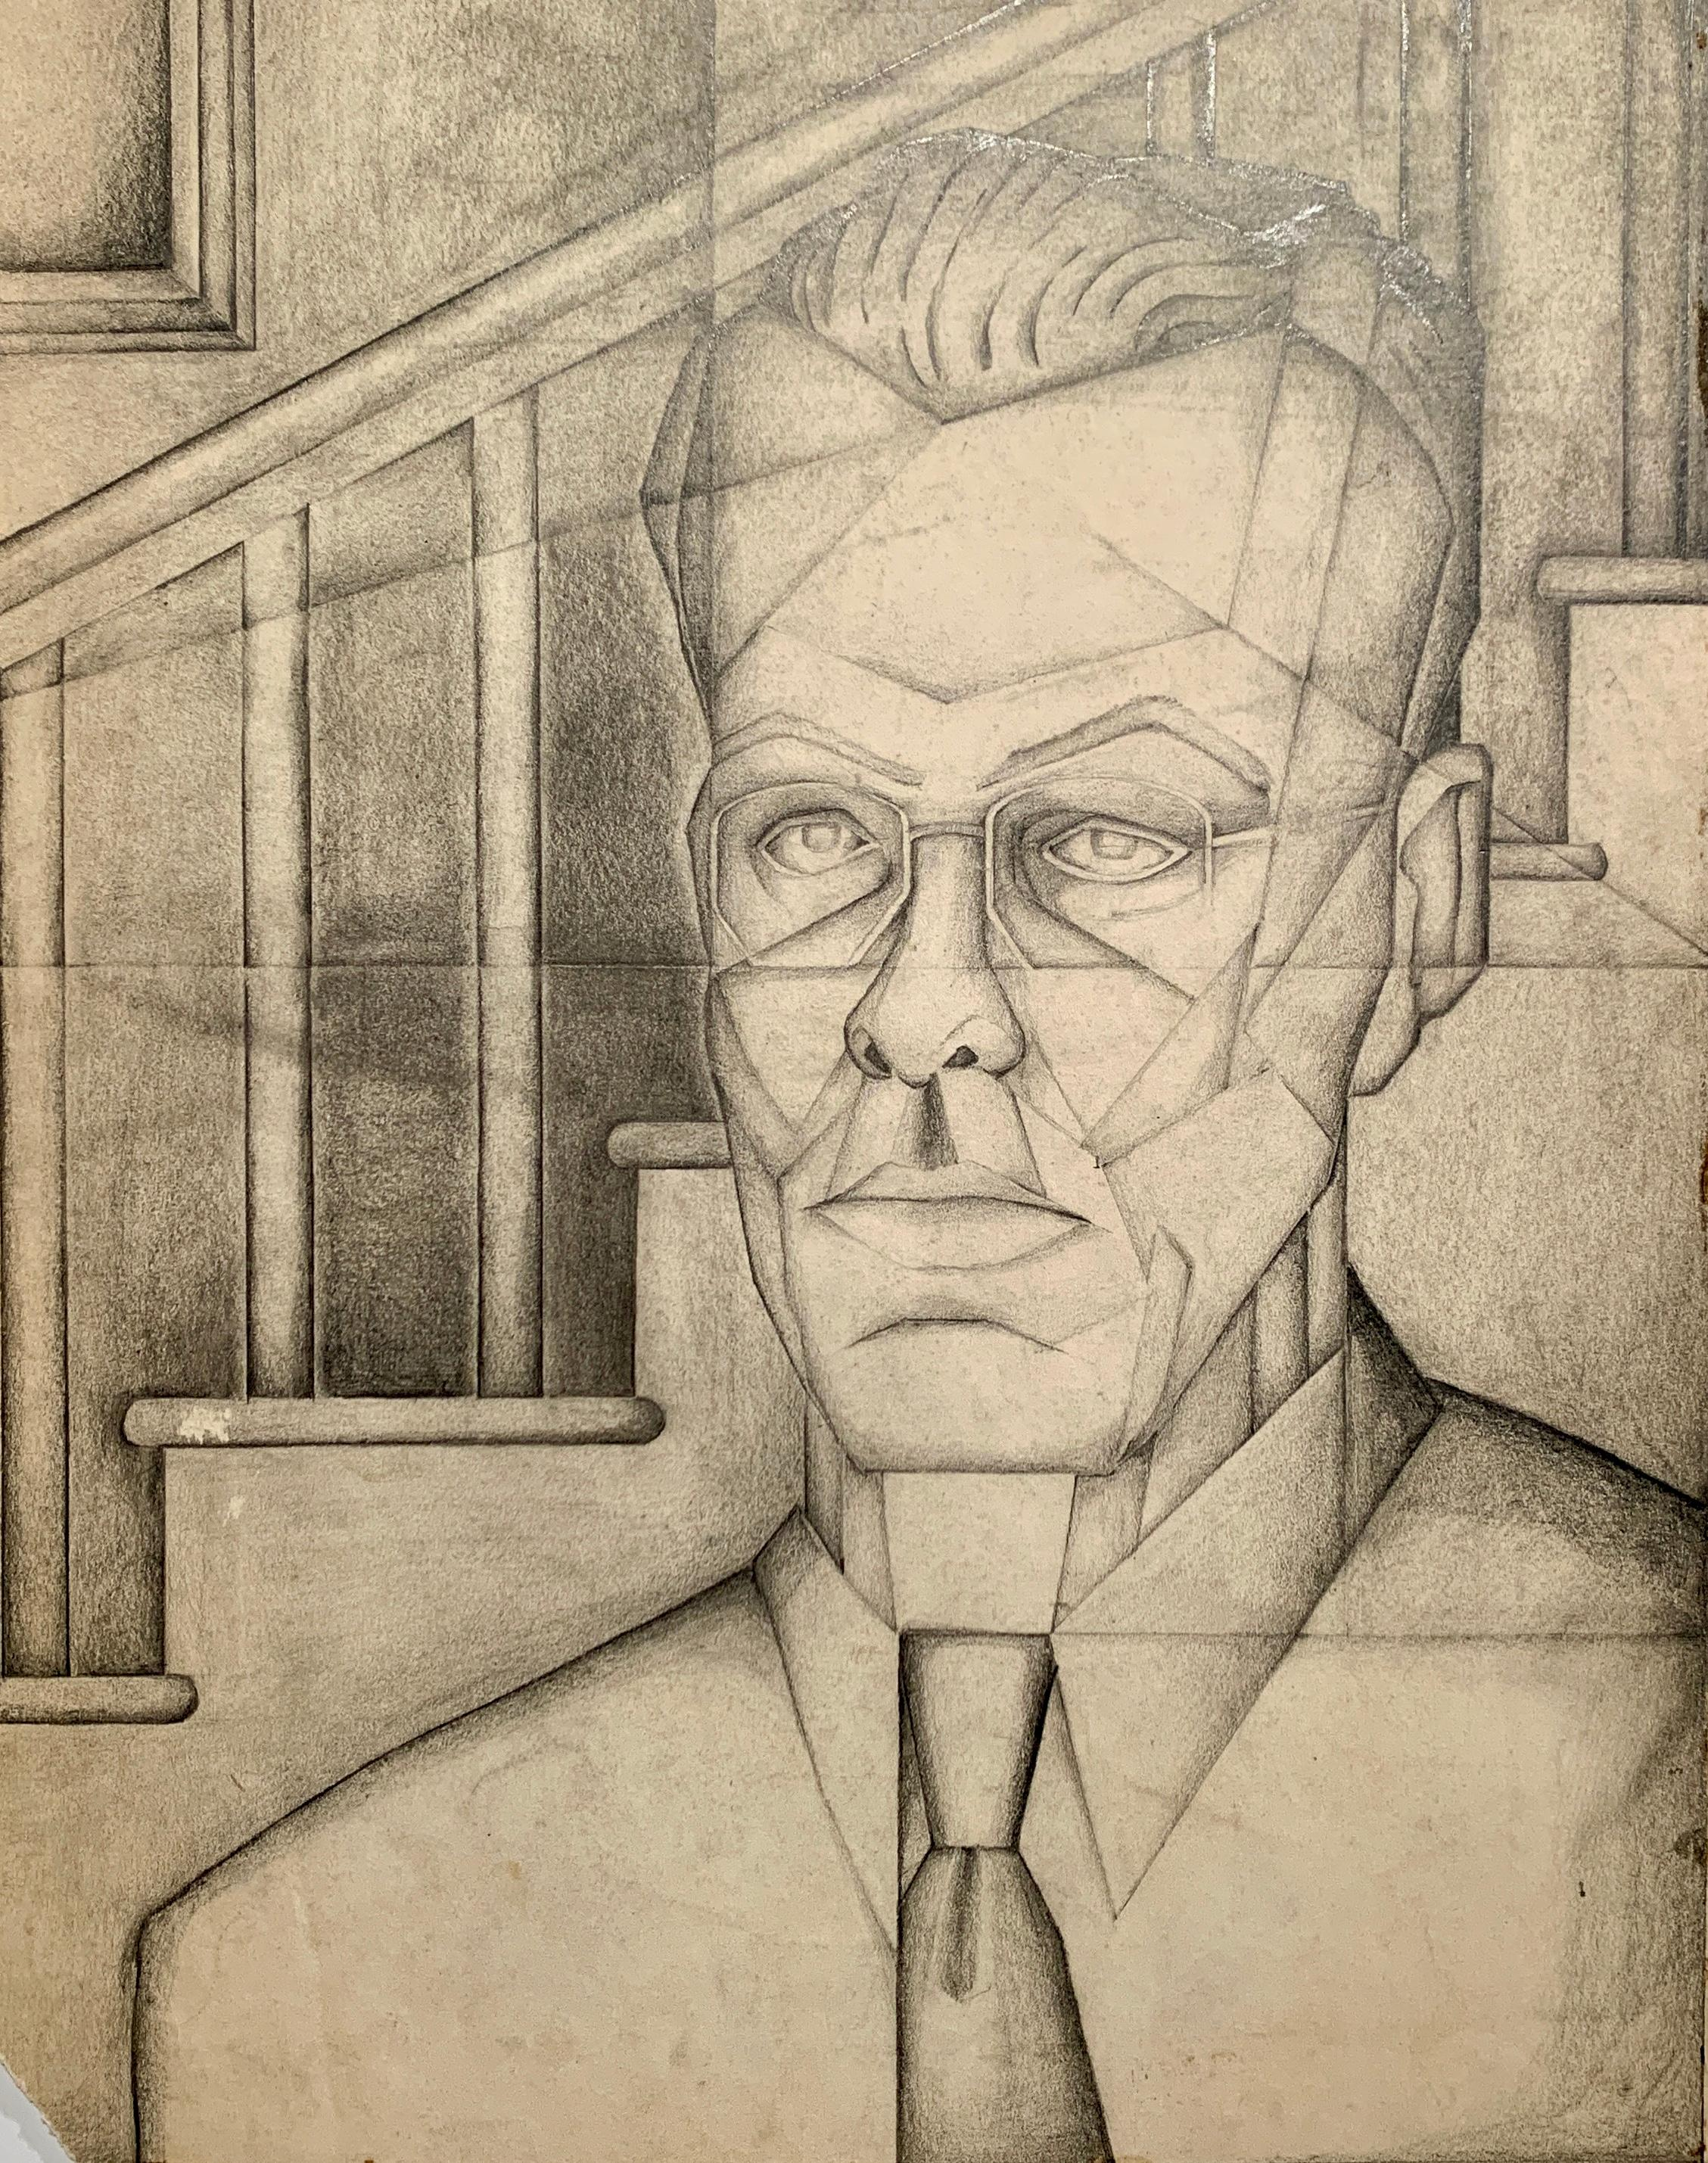 1940s Charcoal and Pencil Portrait of a Man